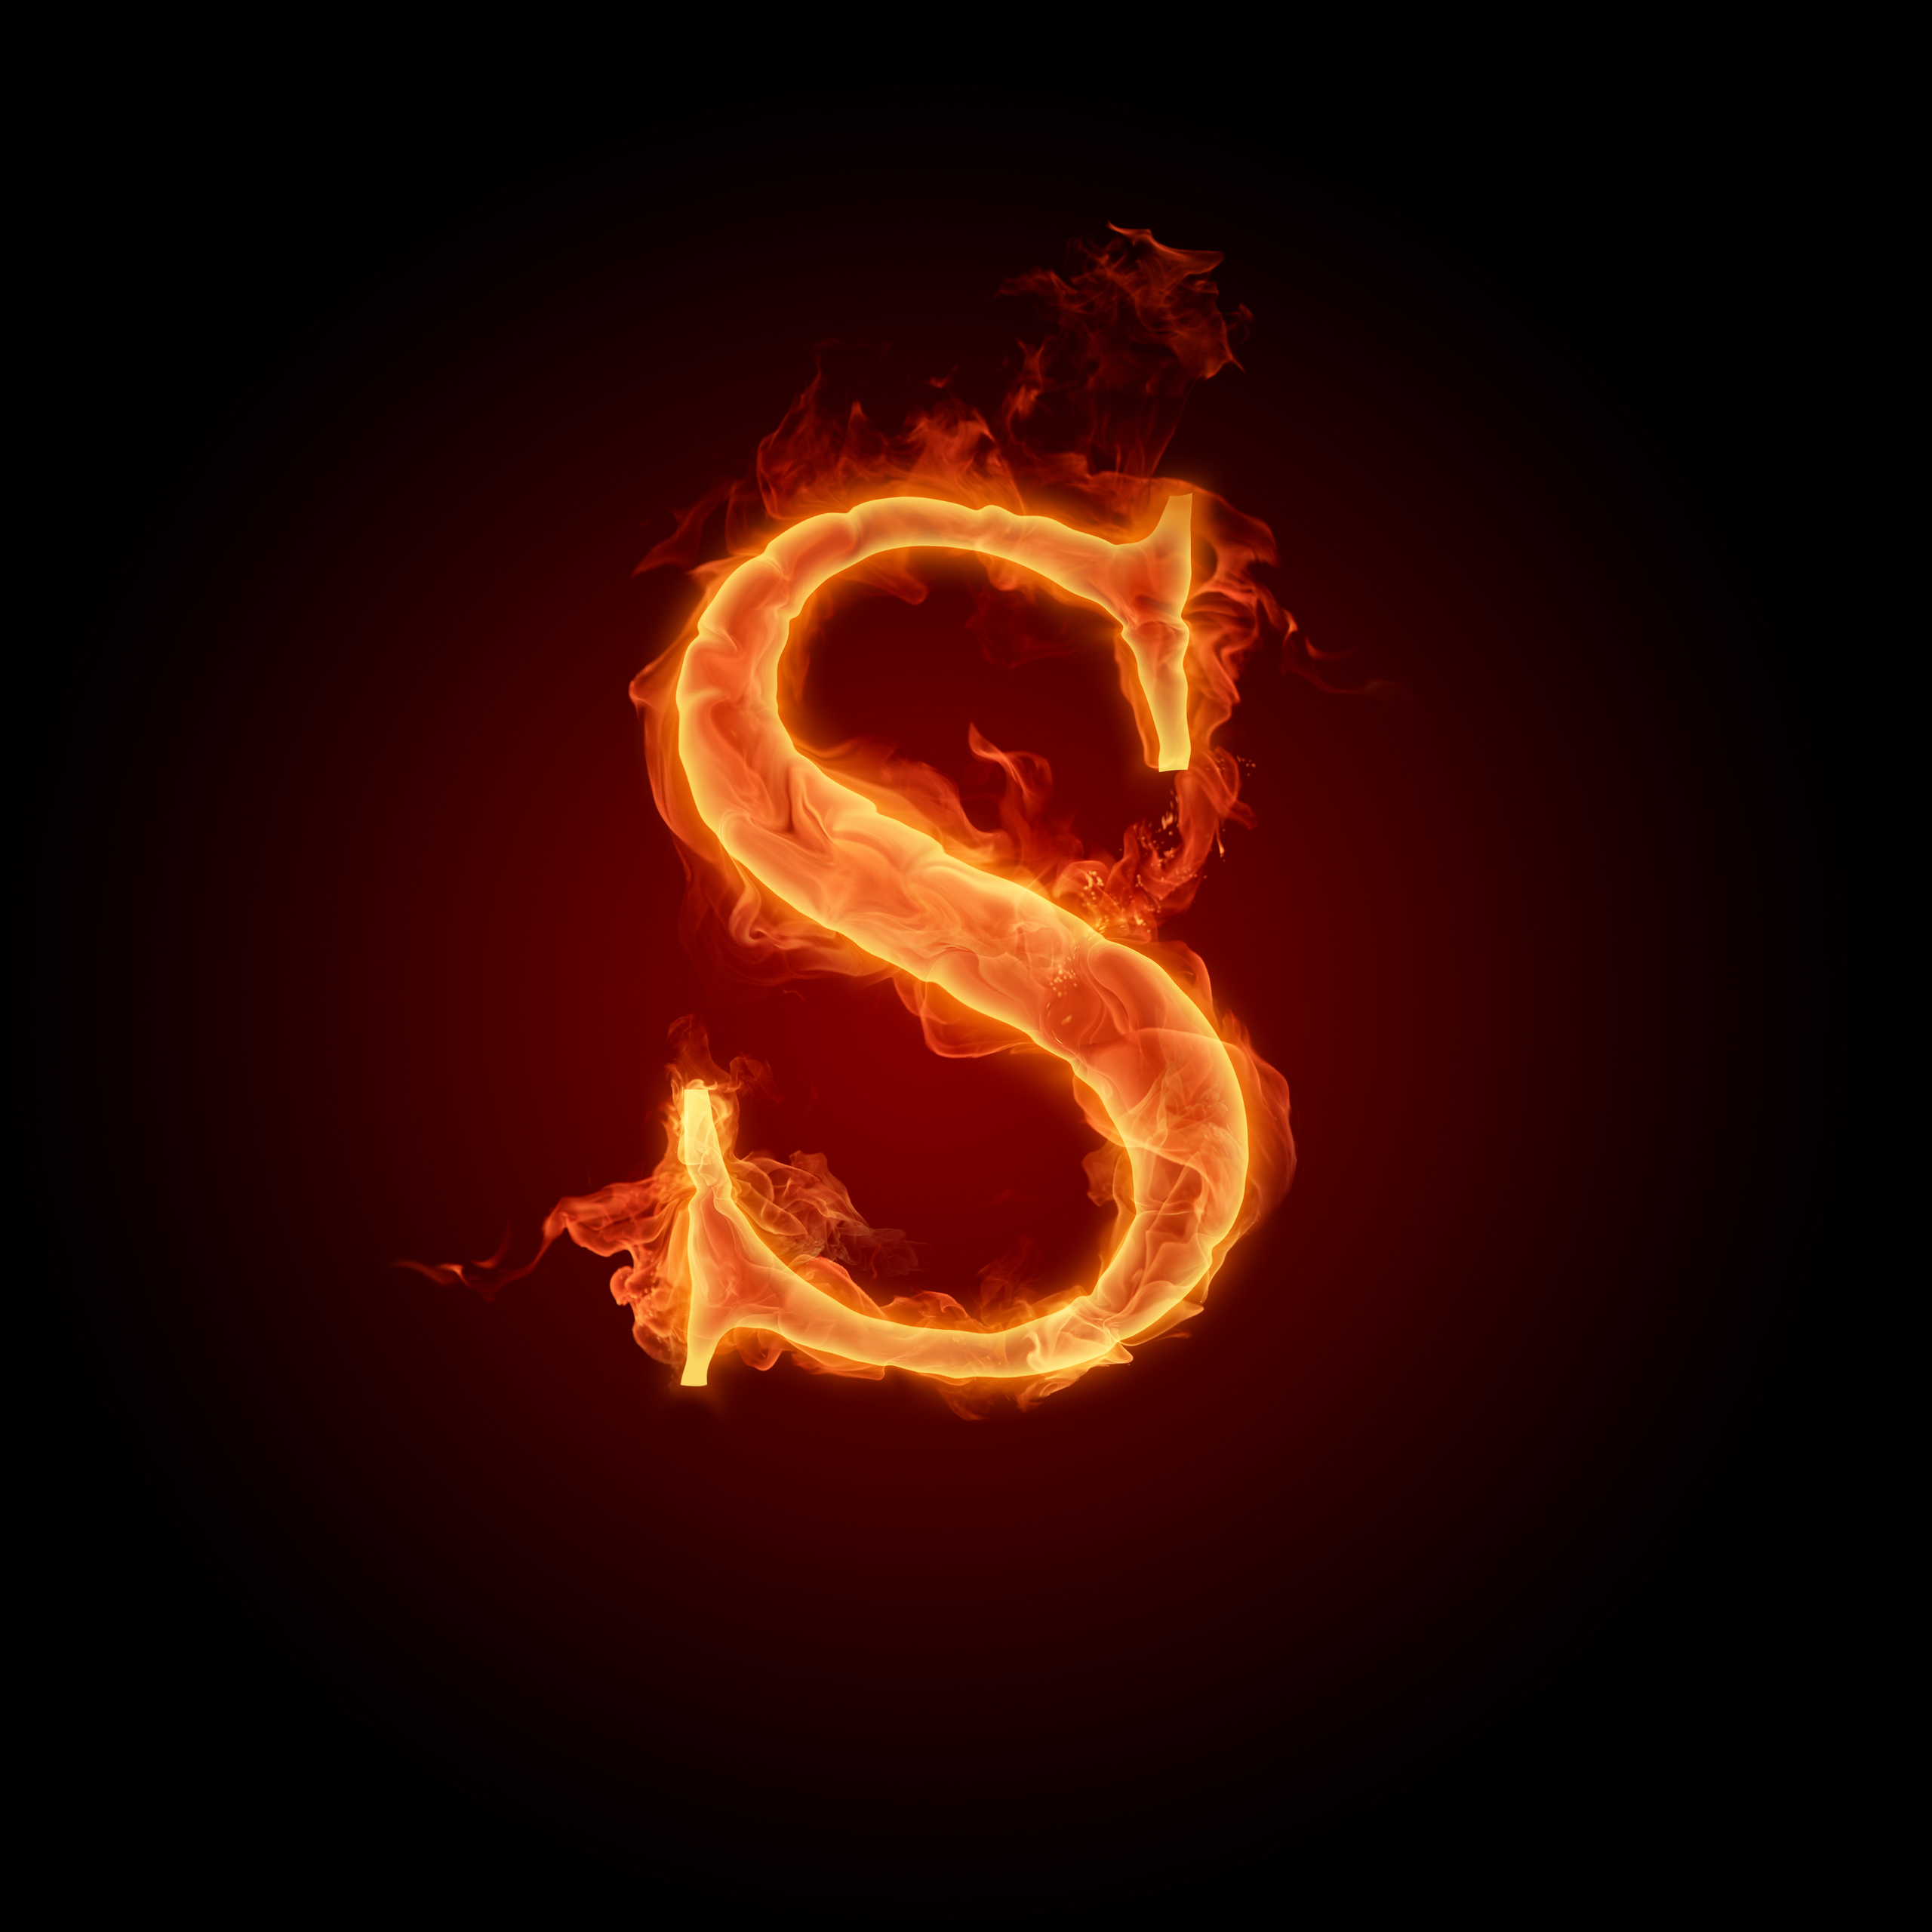 Letter S Backgrounds Grude Interpretomics Co